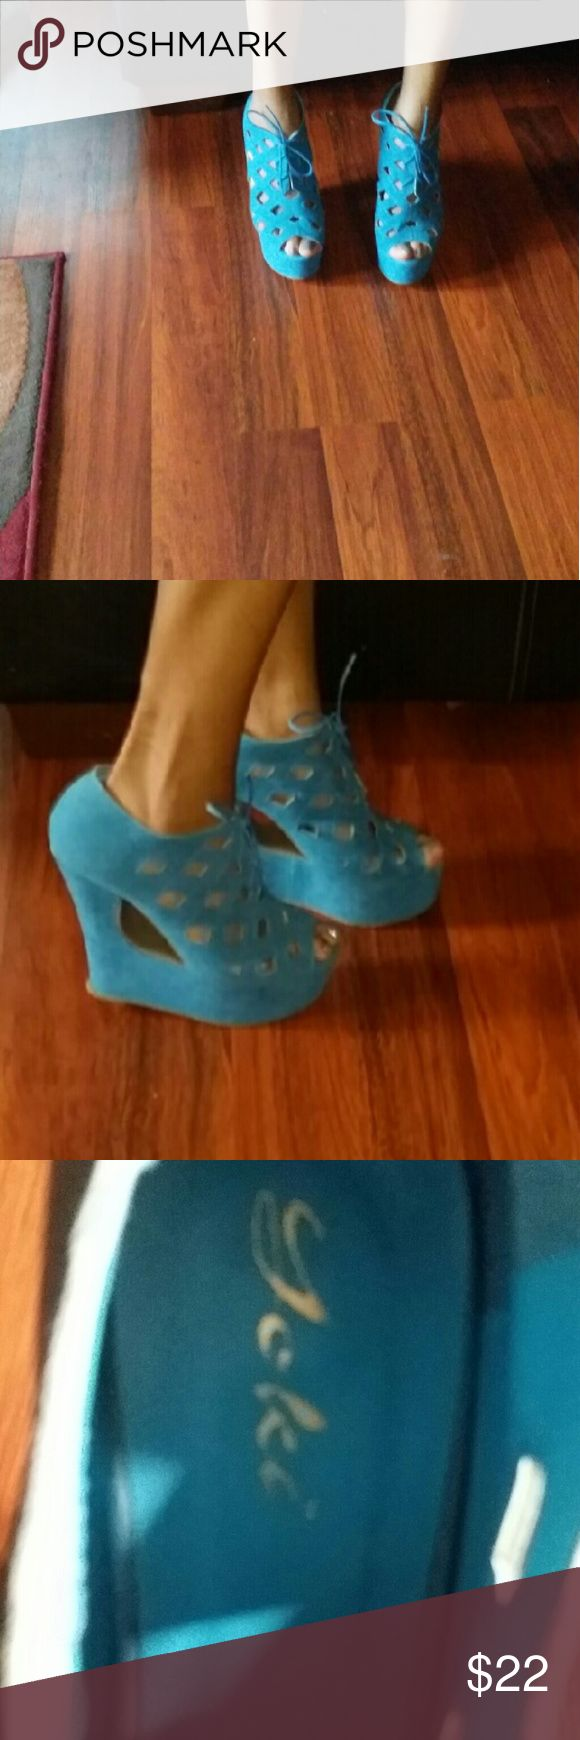 Shoes wedge pump never worn Cut out wedge pump blue Shoes Heels